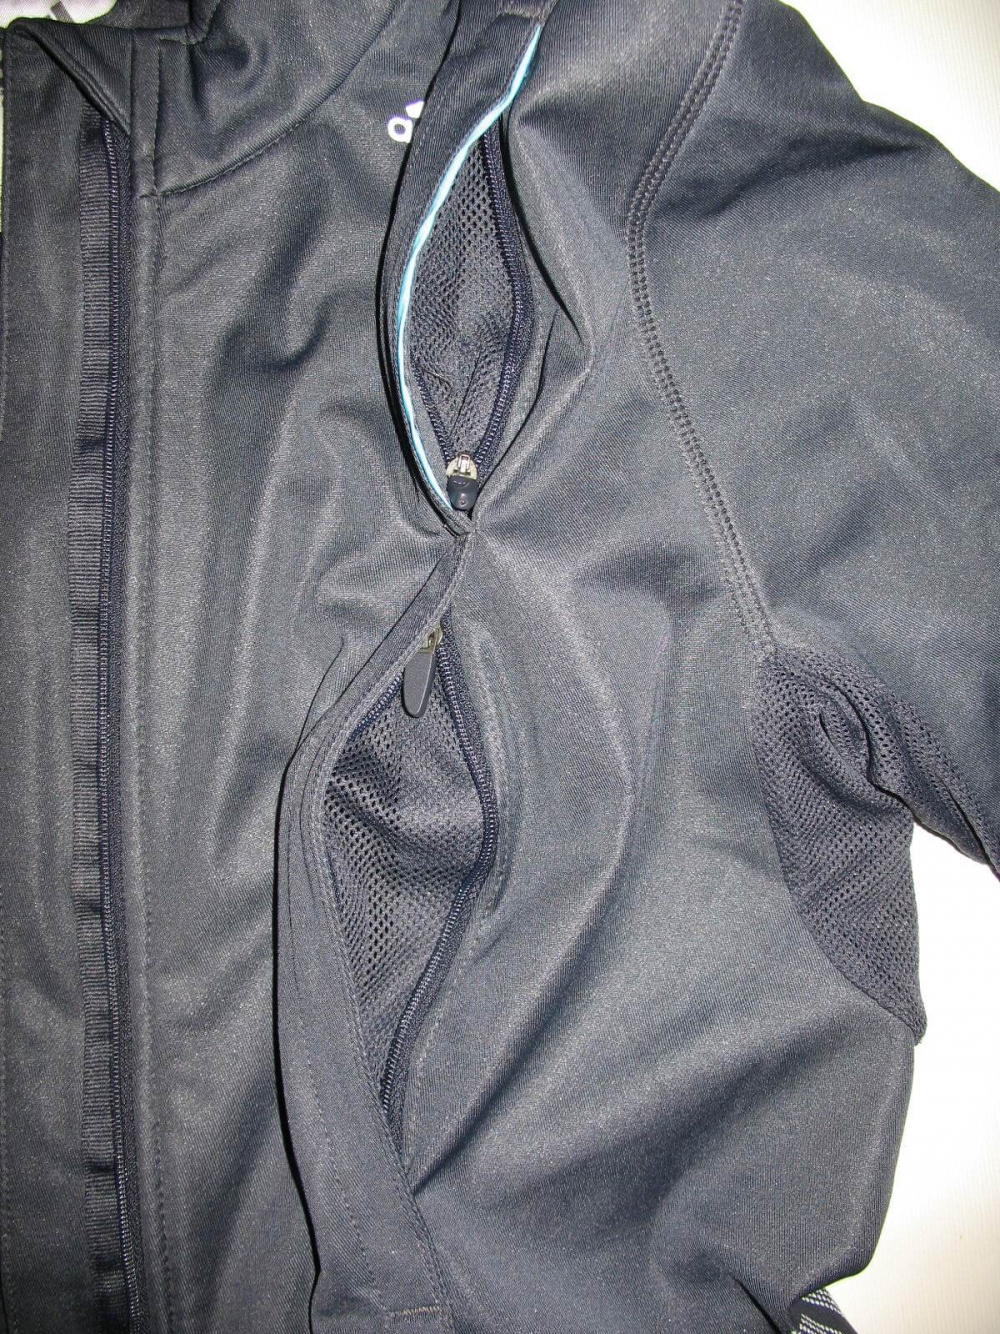 Куртка ADIDAS climaproof windstopper jacket lady (размер М) - 5